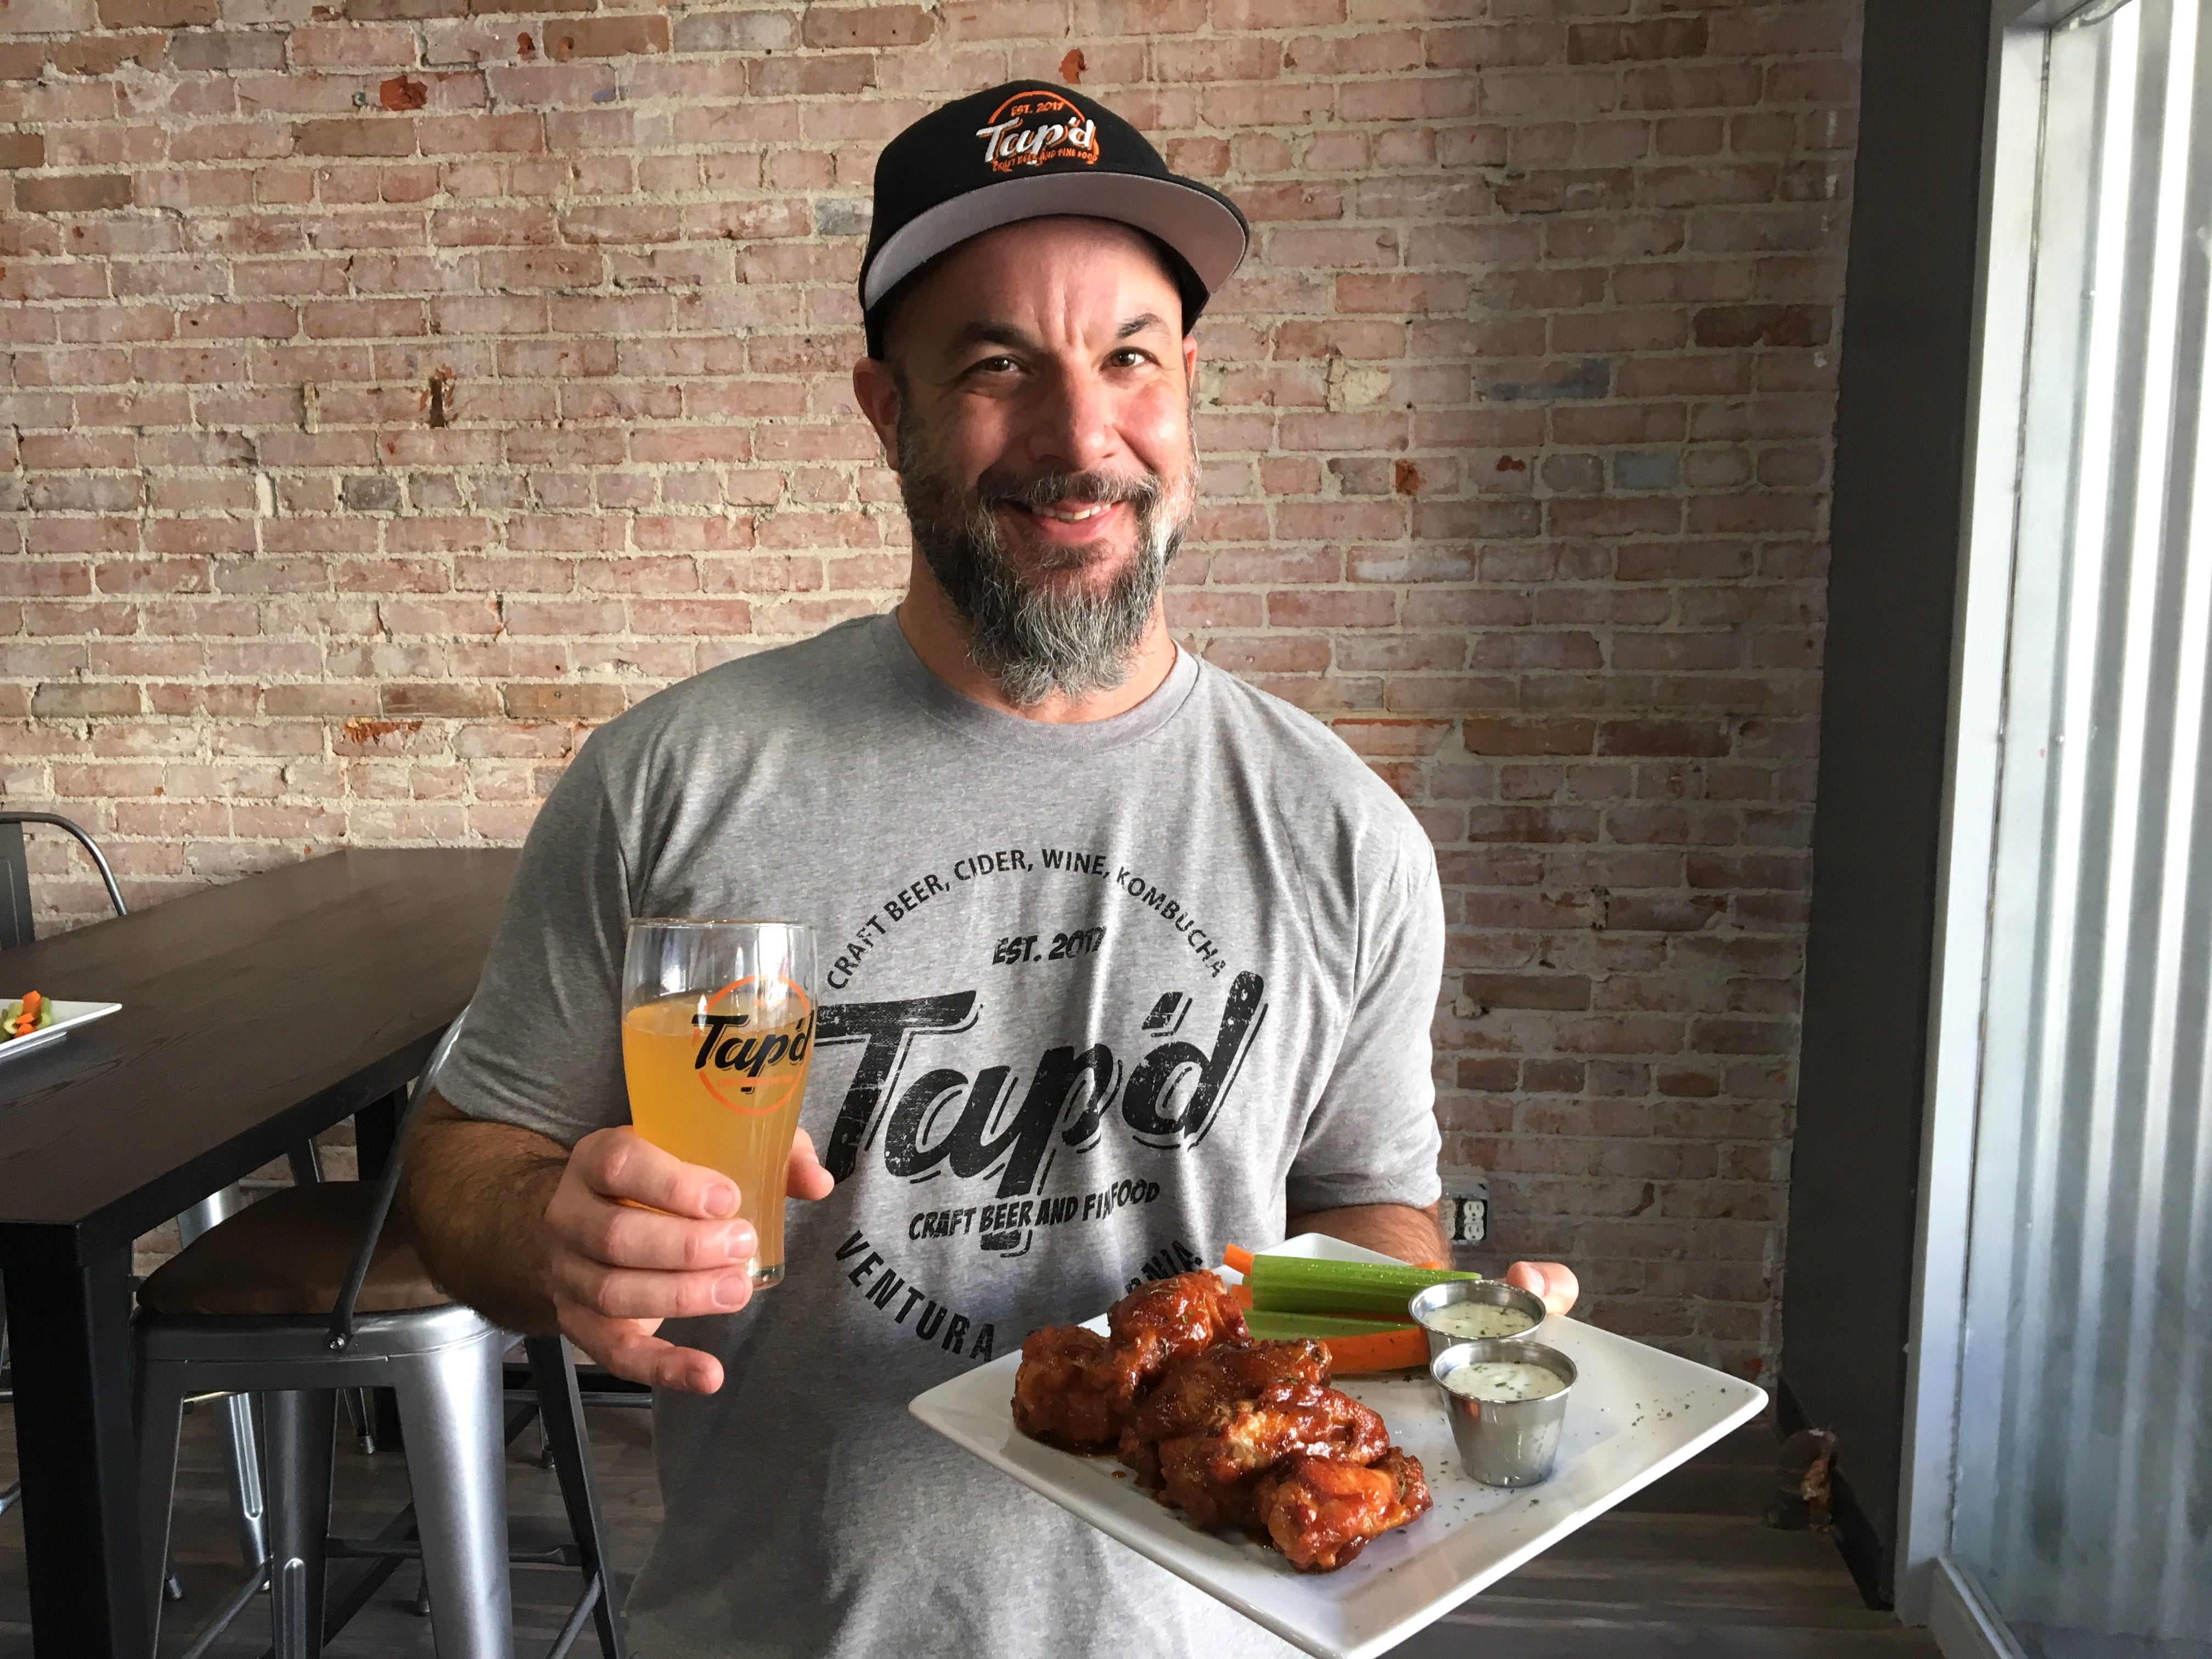 Matt Burin, executive chef at Tap'd Ventura, poses with a pint of beer and a plate of wings. The menu at the self-service taproom also includes burgers, salads, desserts and poutine, for which Burin imports gravy from his native Canada.